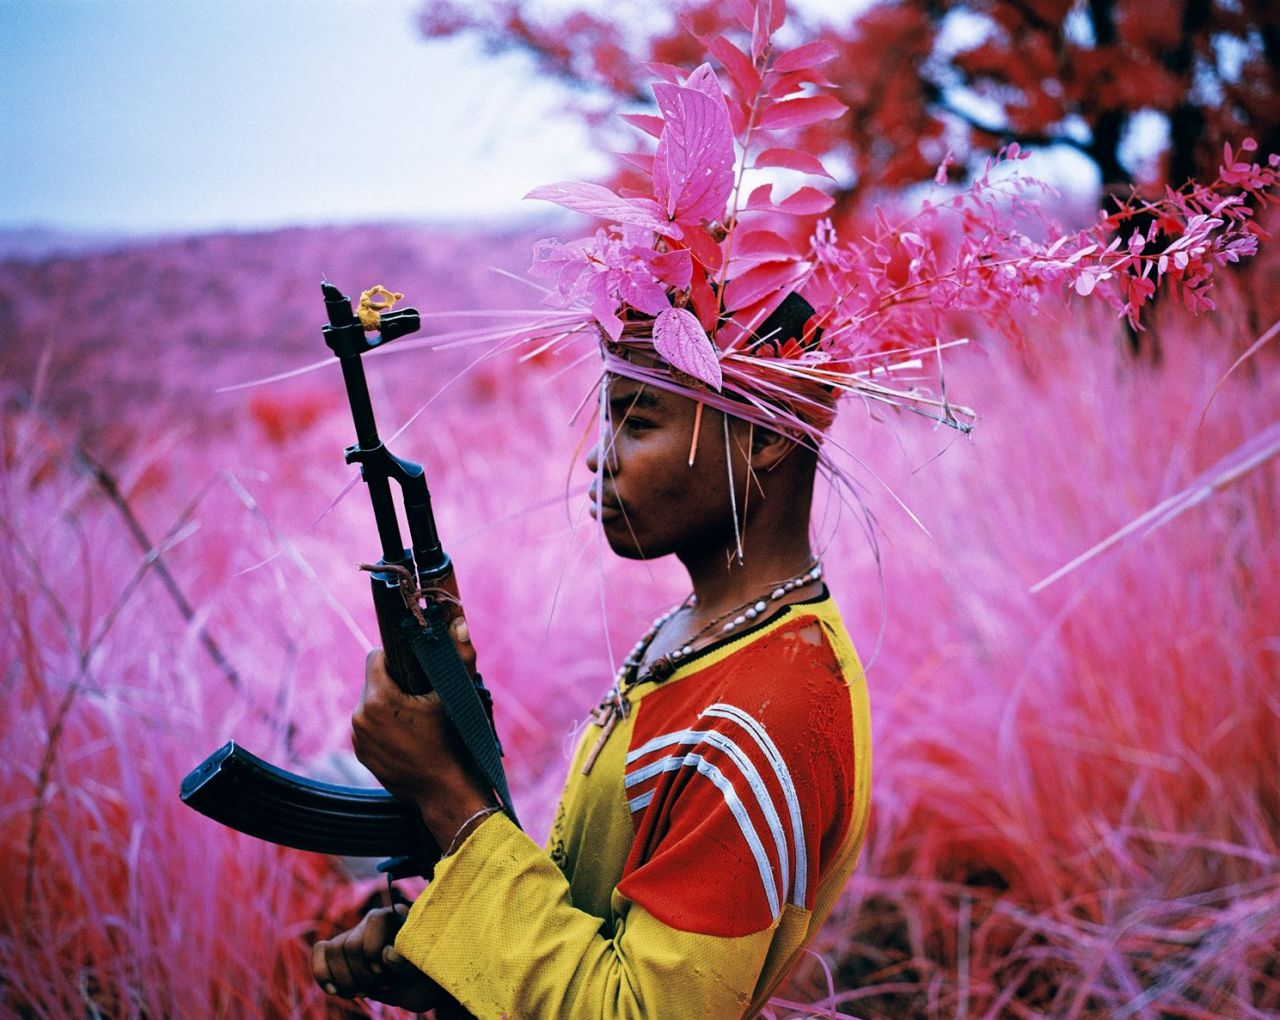 Safe From Harm, North Kivu, eastern Congo, 2012. Image courtesy of the artist and Jack Shainman Gallery (c) Richard Mosse